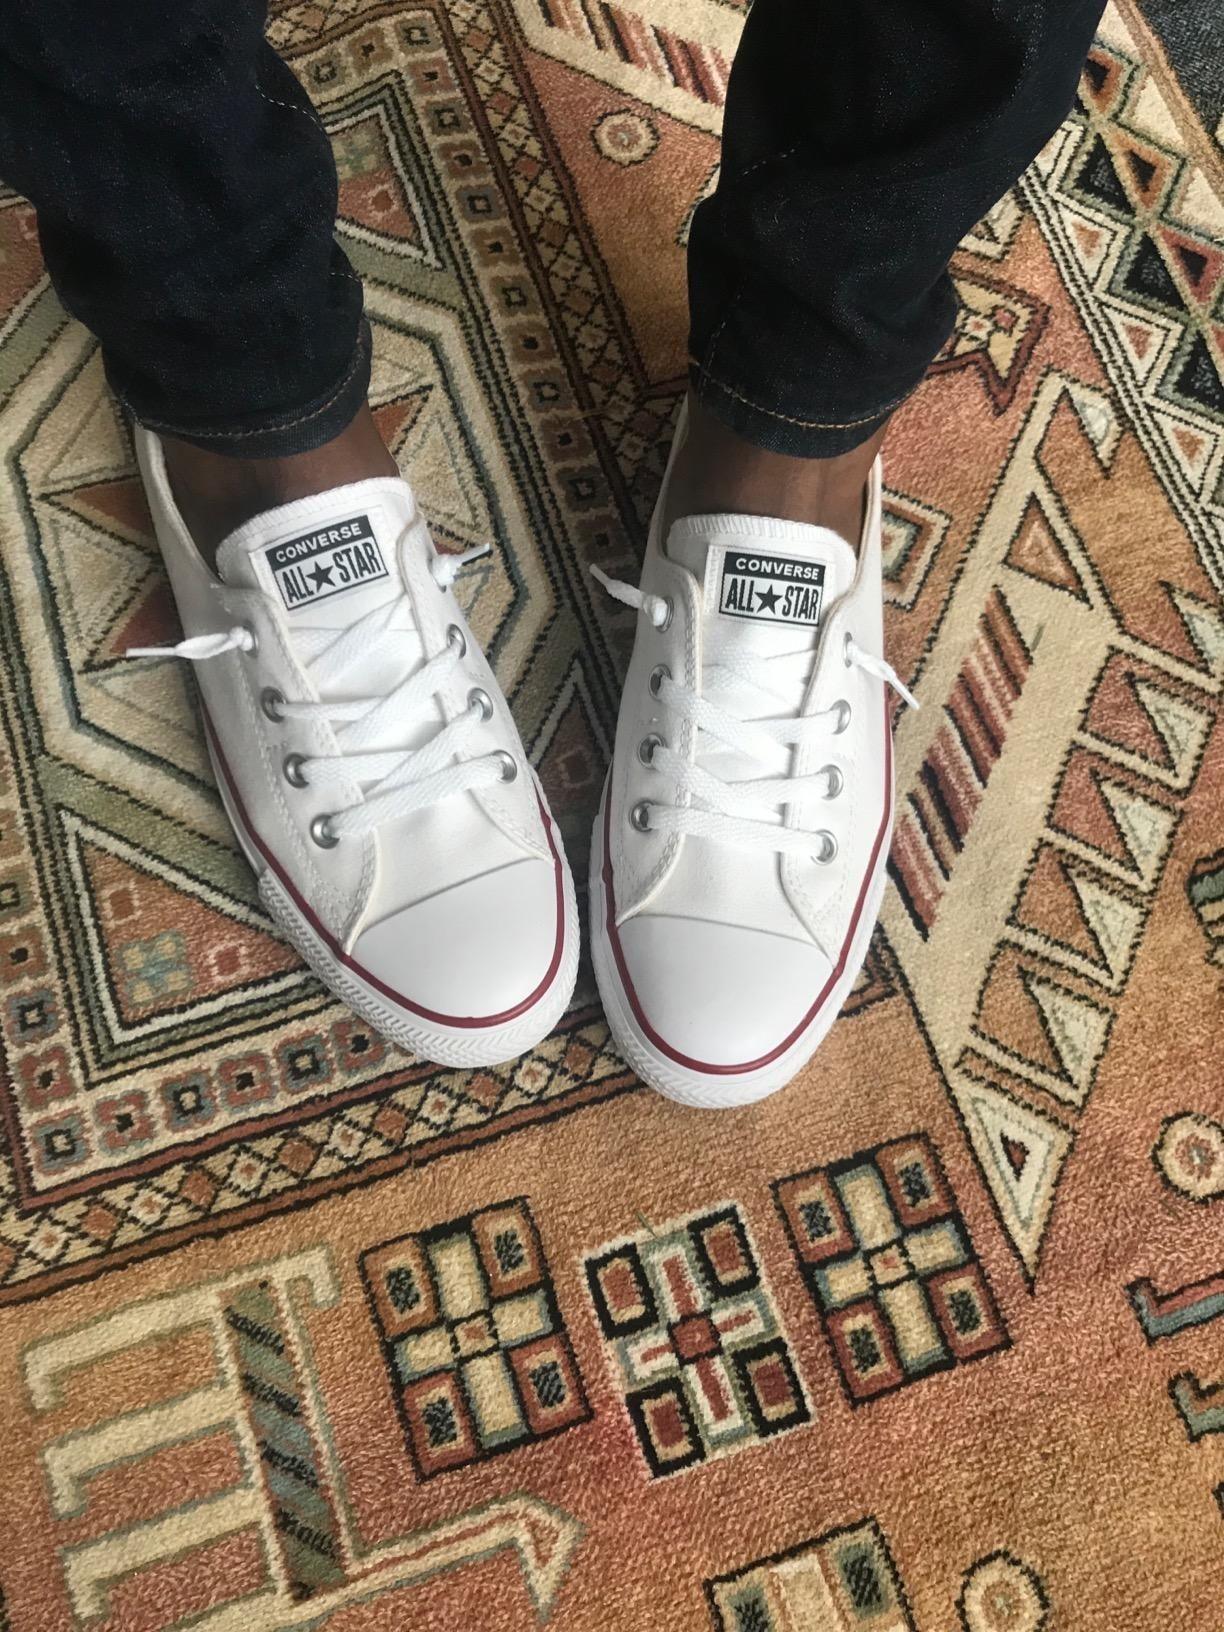 2441b212cd9df 22 Sneakers You Can Get On Amazon That Thousands Of People Swear By